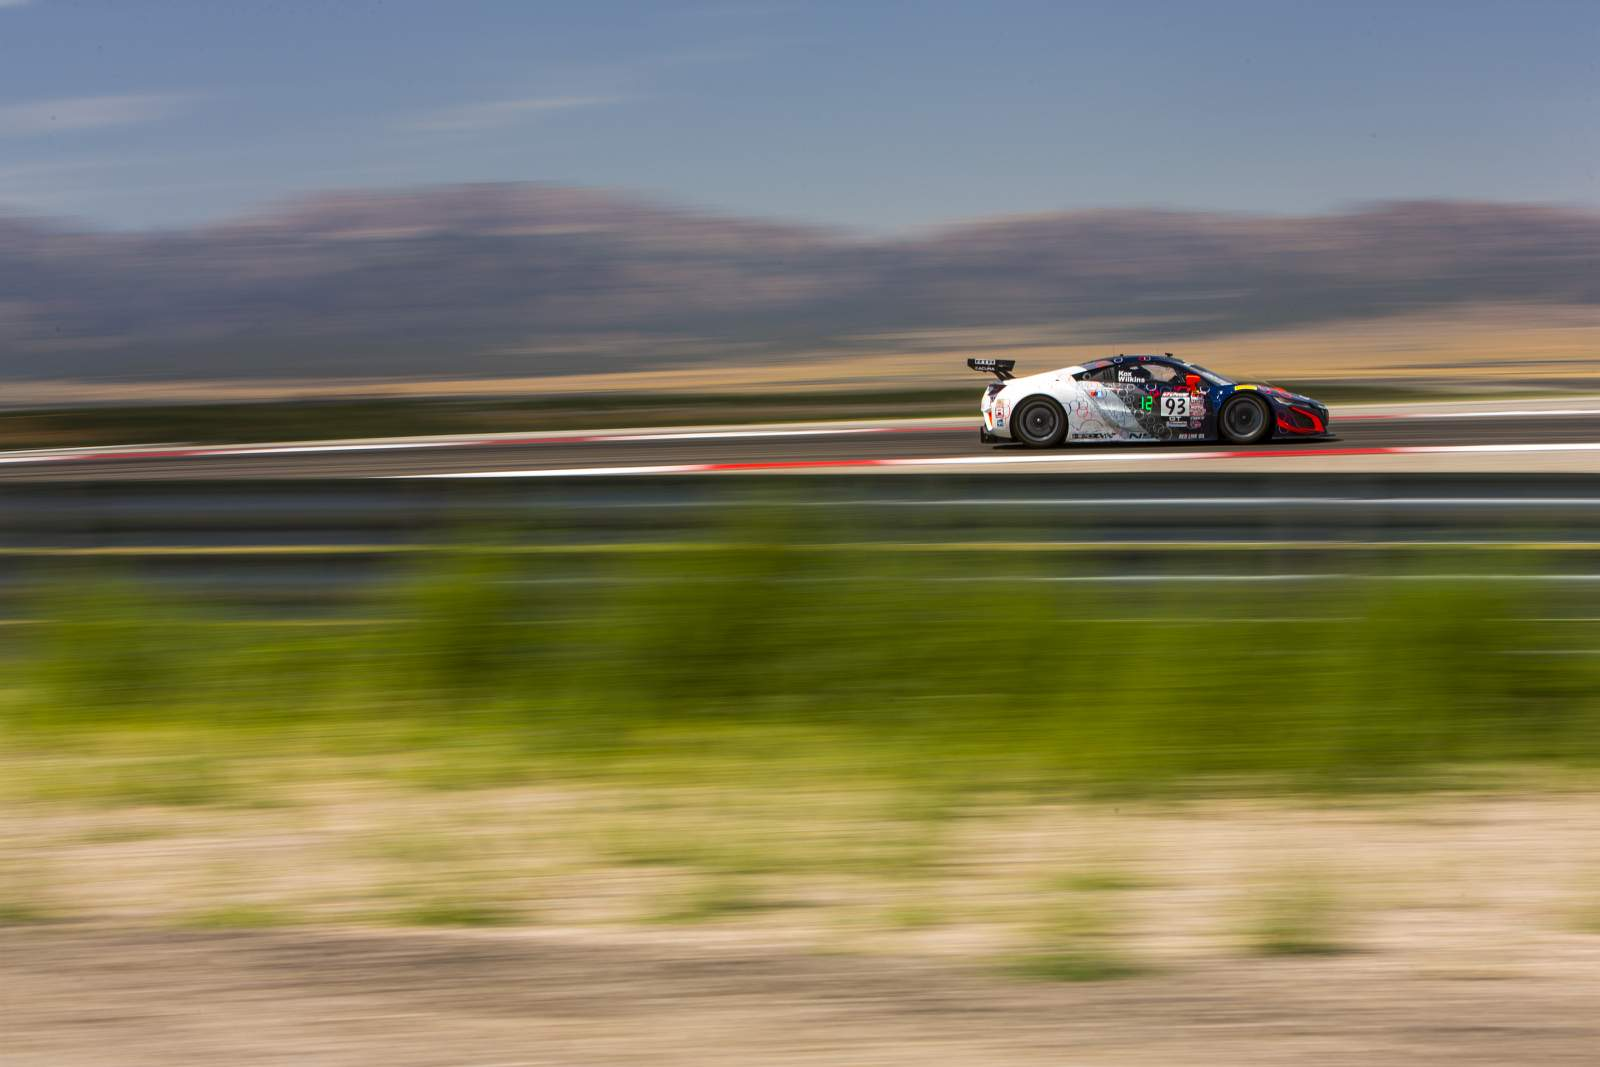 peter-kox-realtime-racing-pirelli-world-challenge-utah-motorsport-campus--209